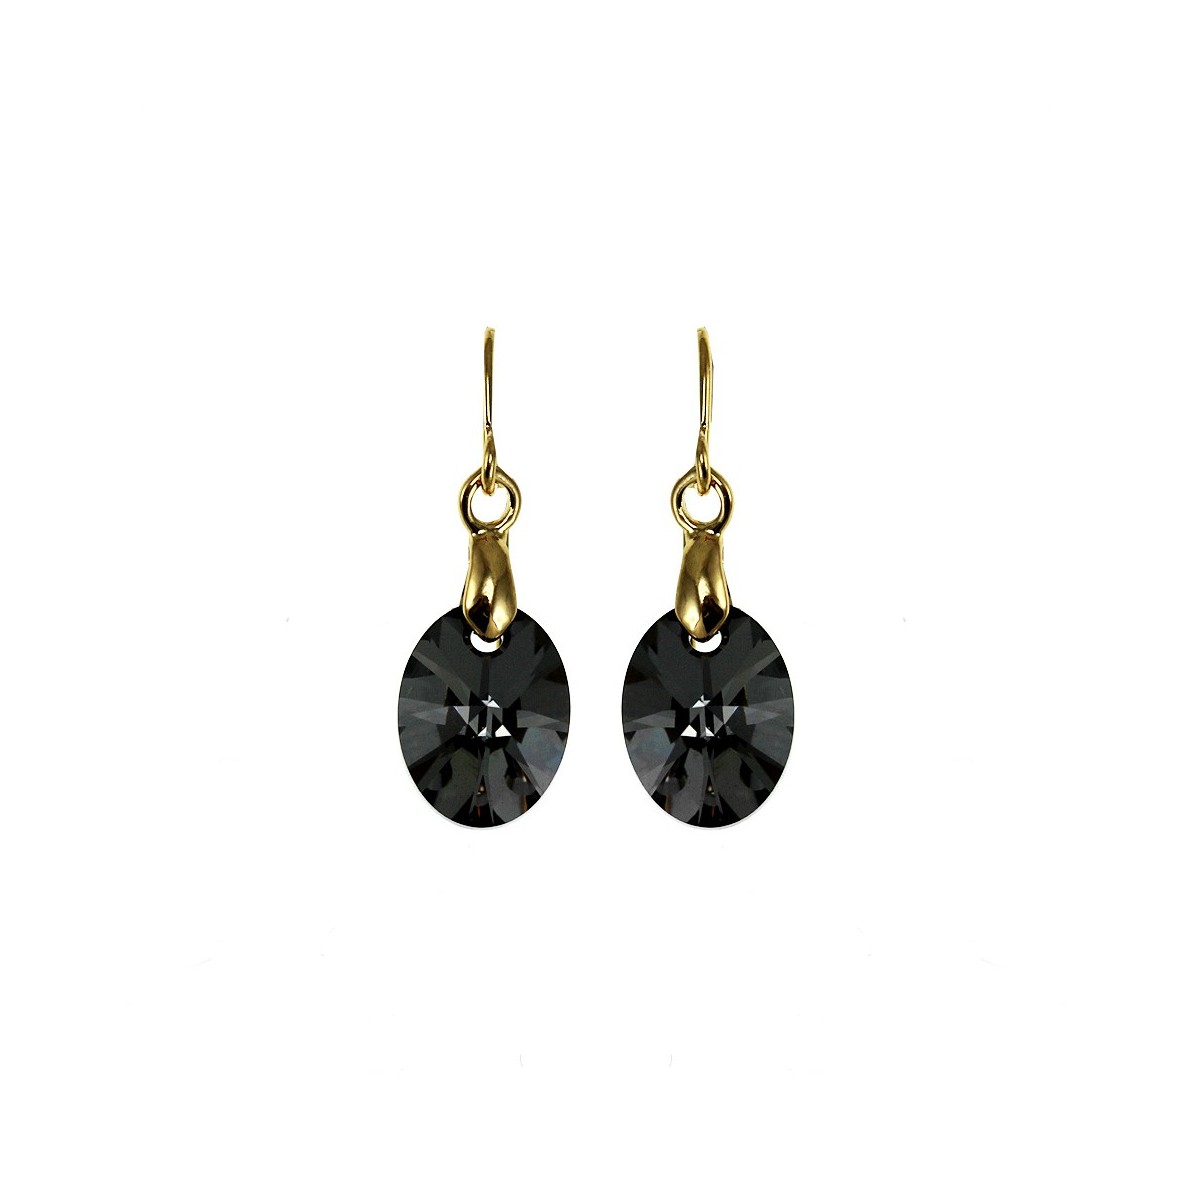 Boucles d'oreilles So Charm ornées d'un cristal noir made with crystal from Swarovski